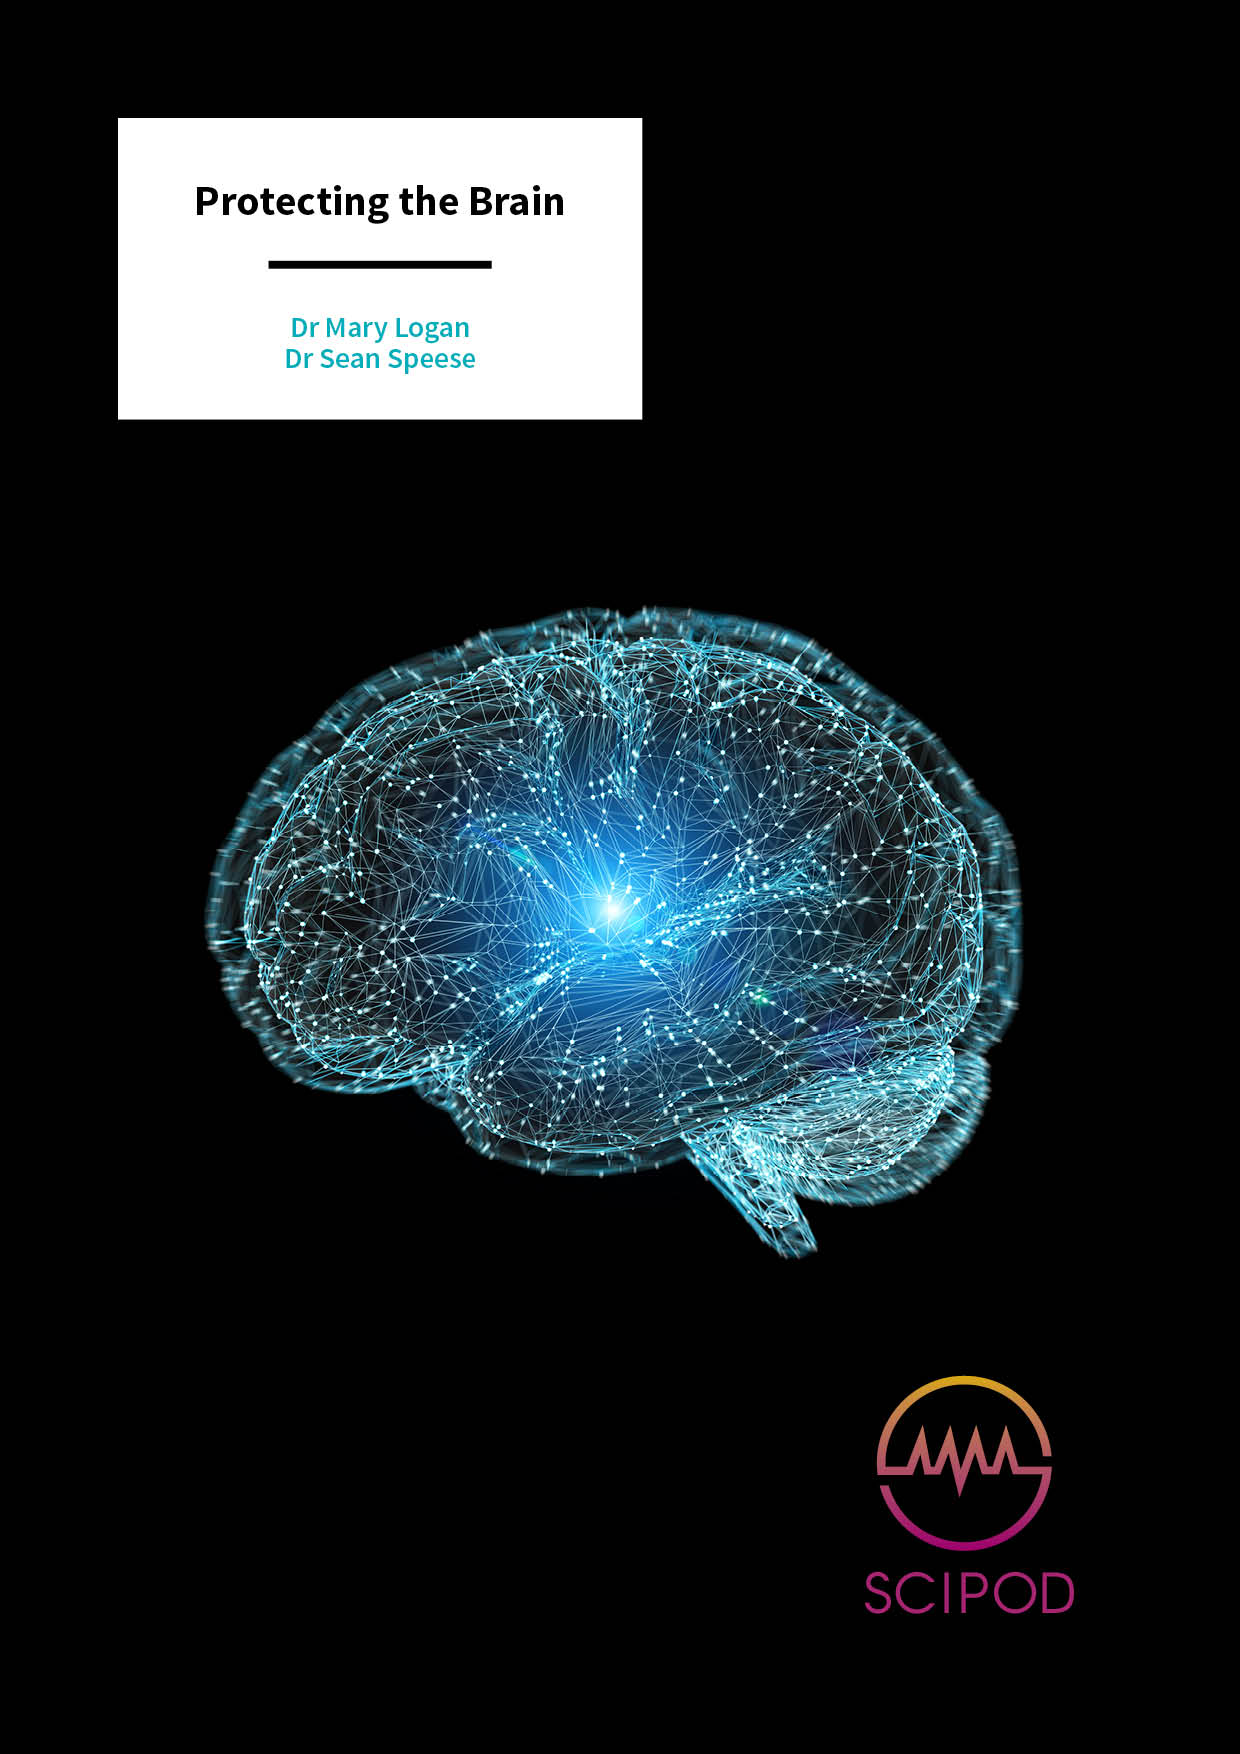 Protecting the Brain – Dr Mary Logan Dr Sean Speese, Oregon Health and Science University